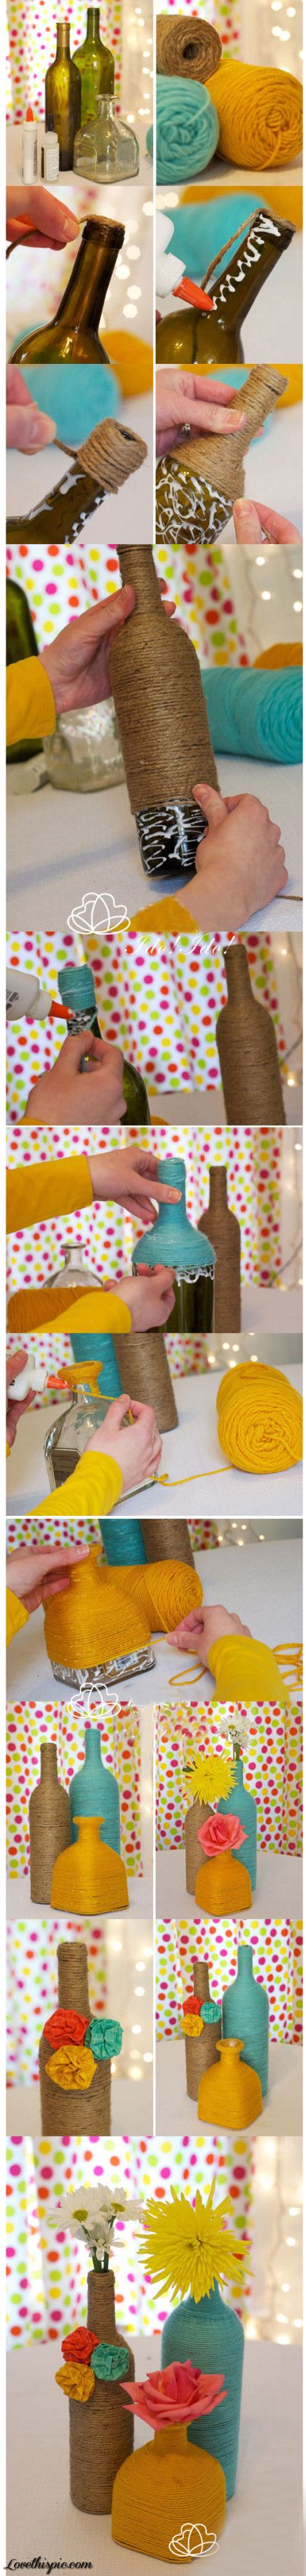 DIY Yarn Bottles Pictures, Photos, and Images for Facebook, Tumblr, Pinterest, and Twitter